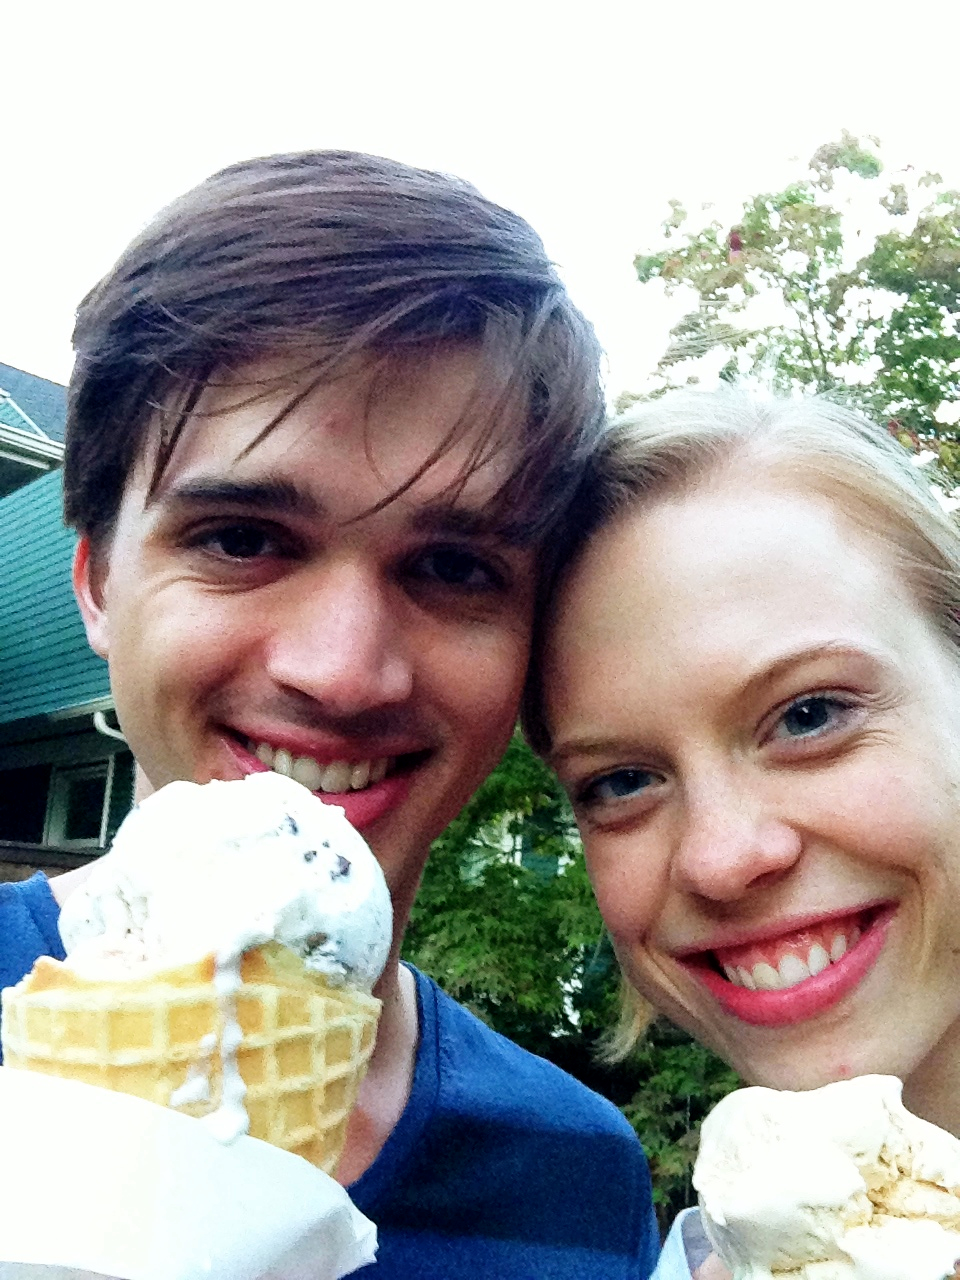 Price & Emma Love Suddarth with their Molly Moon's ice cream.